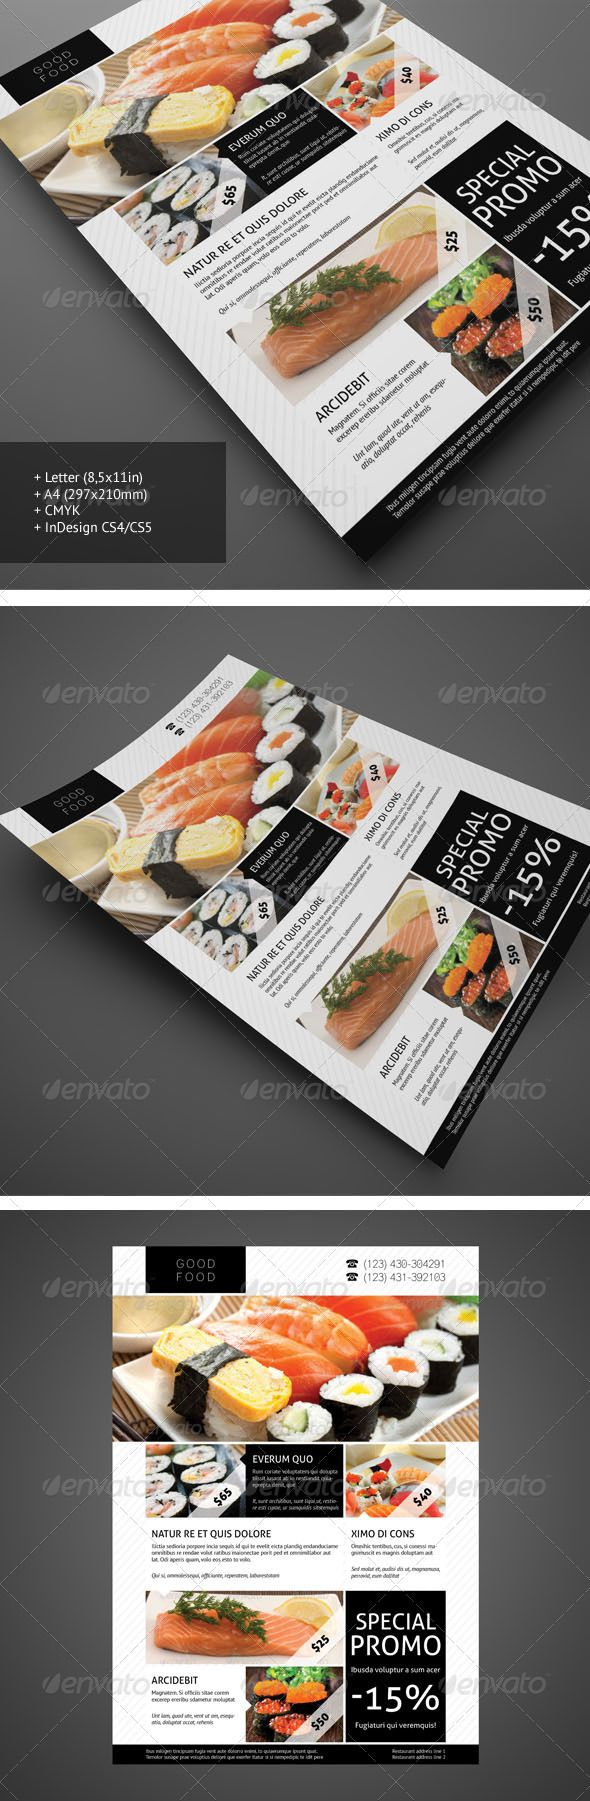 www.demorfoza.com Flyer design inspiration #restaurant #flyer #template